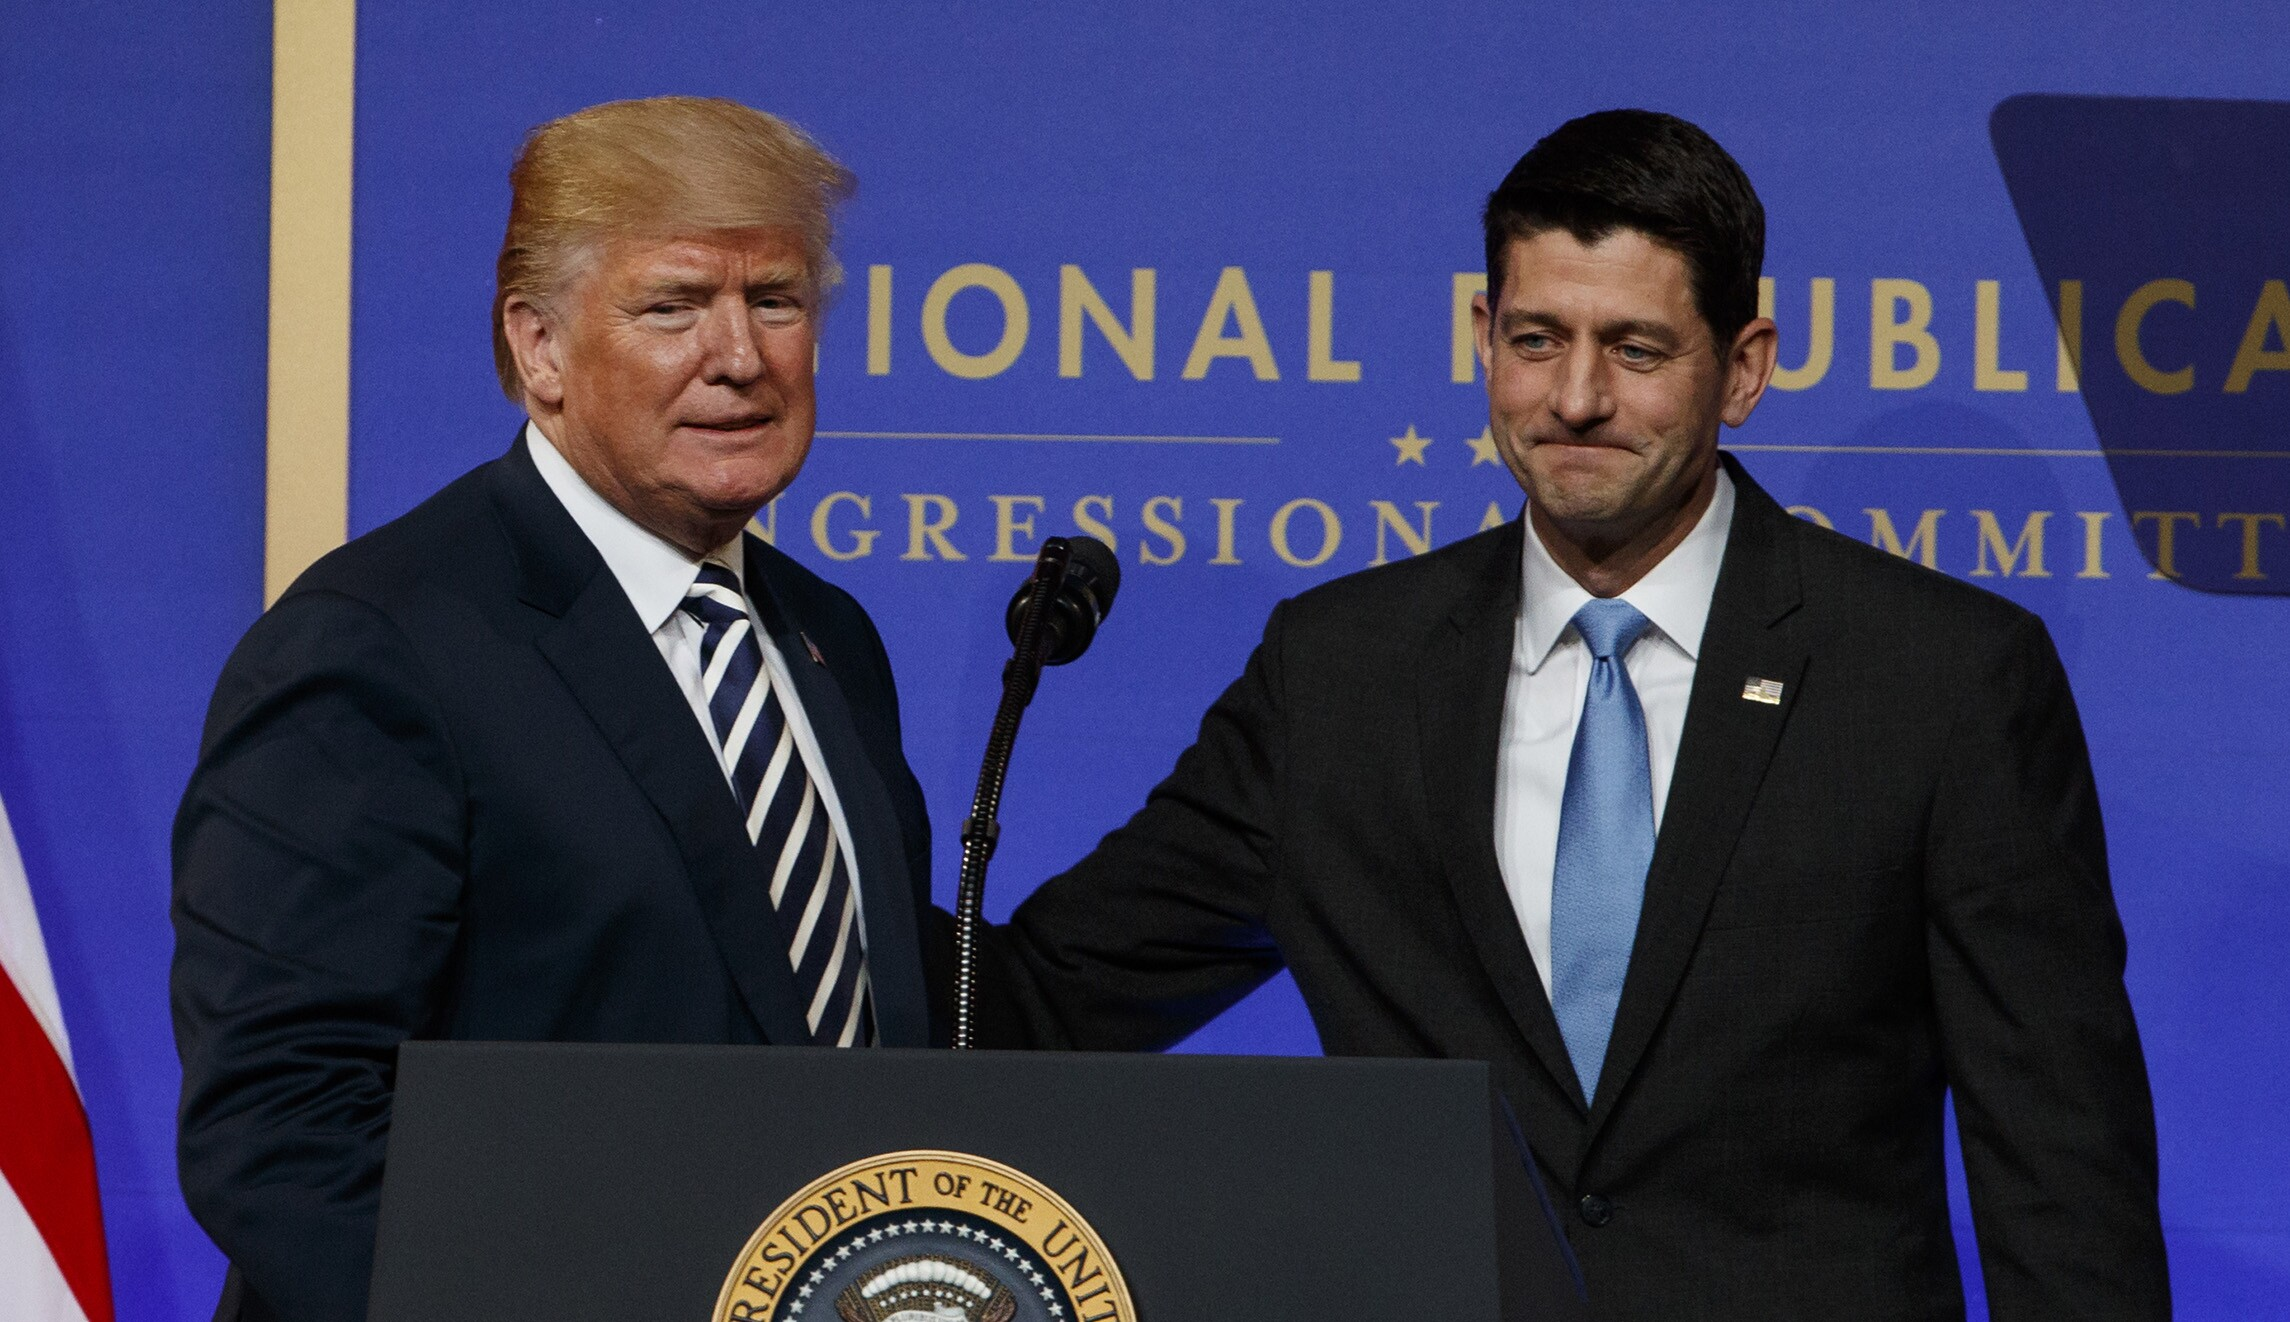 Wisconsins Own Paul Ryan Making Waves >> Paul Ryan Trump Is An Asset For Gop In 2018 Midterms